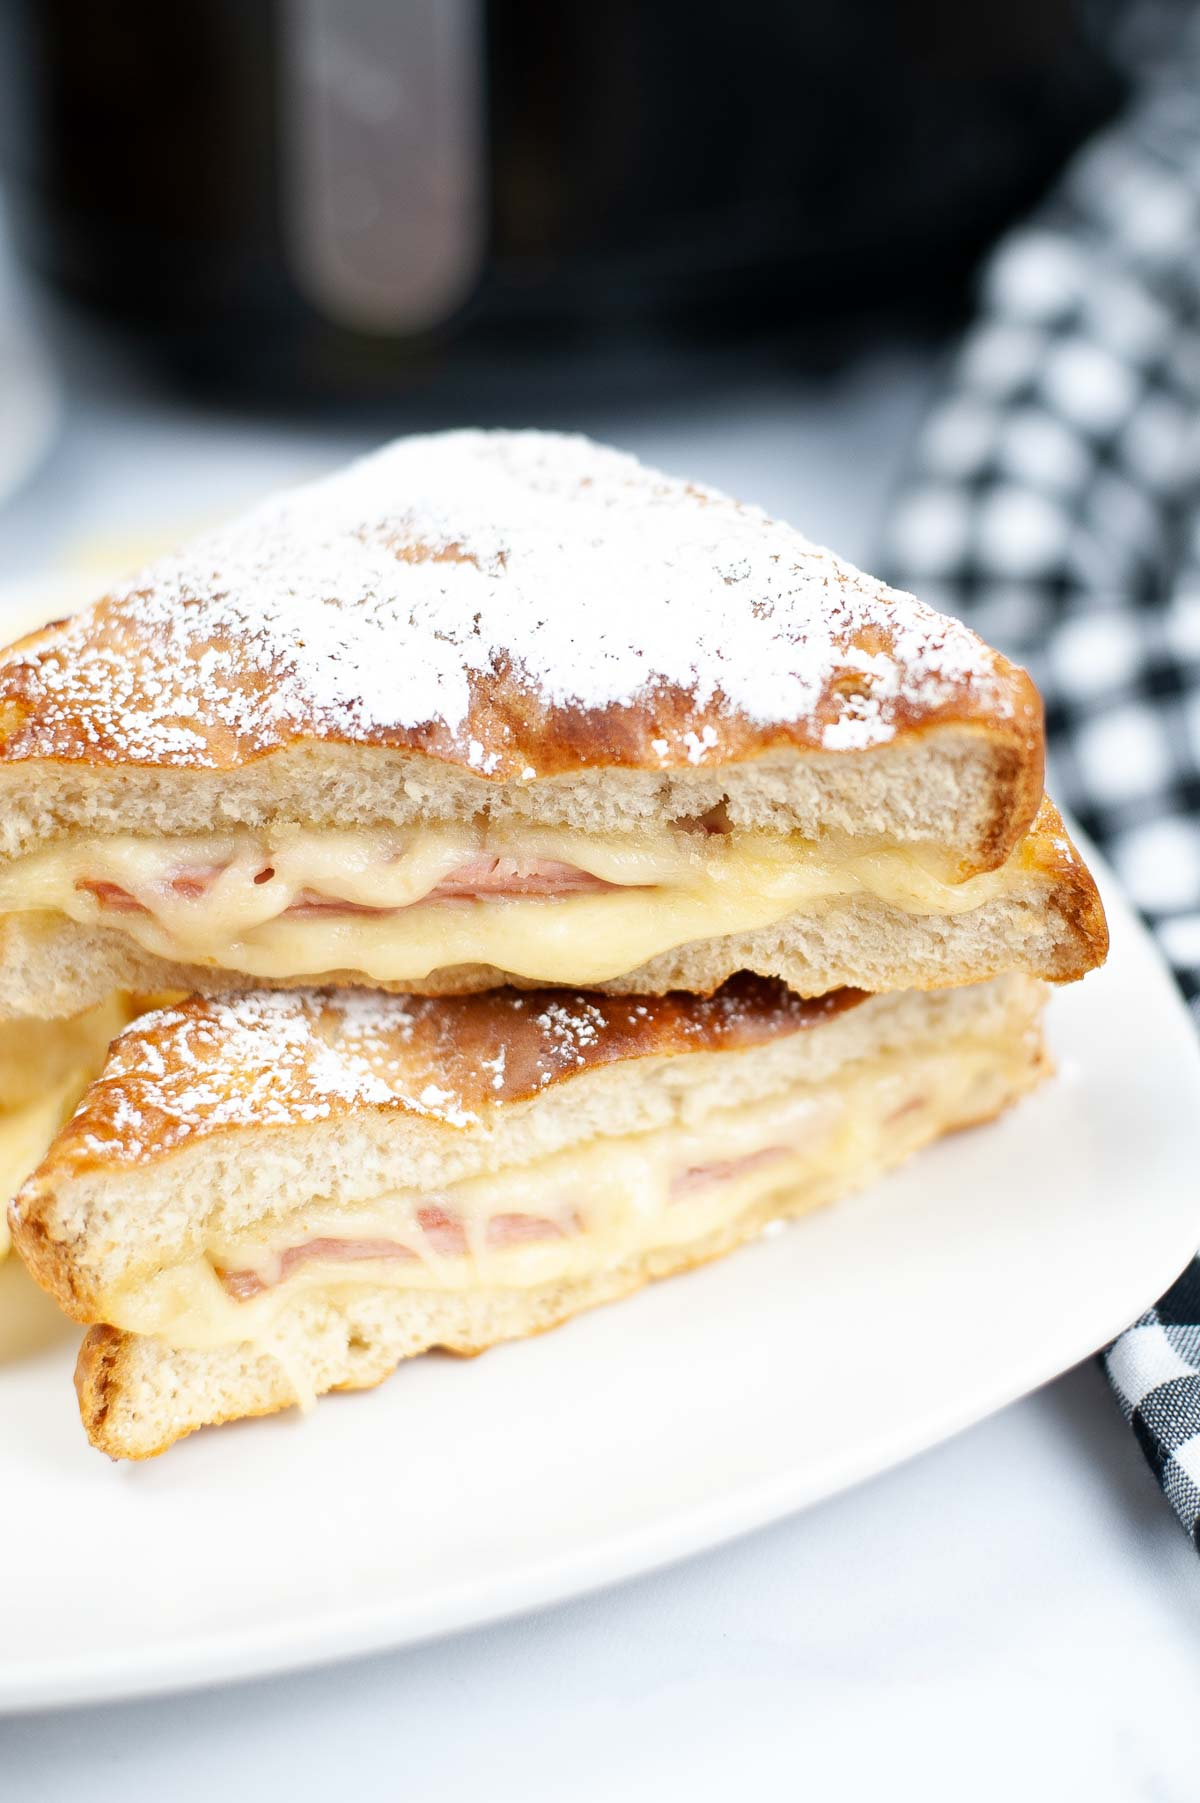 sliced monte cristo sandwich on a white plate with potato chips.